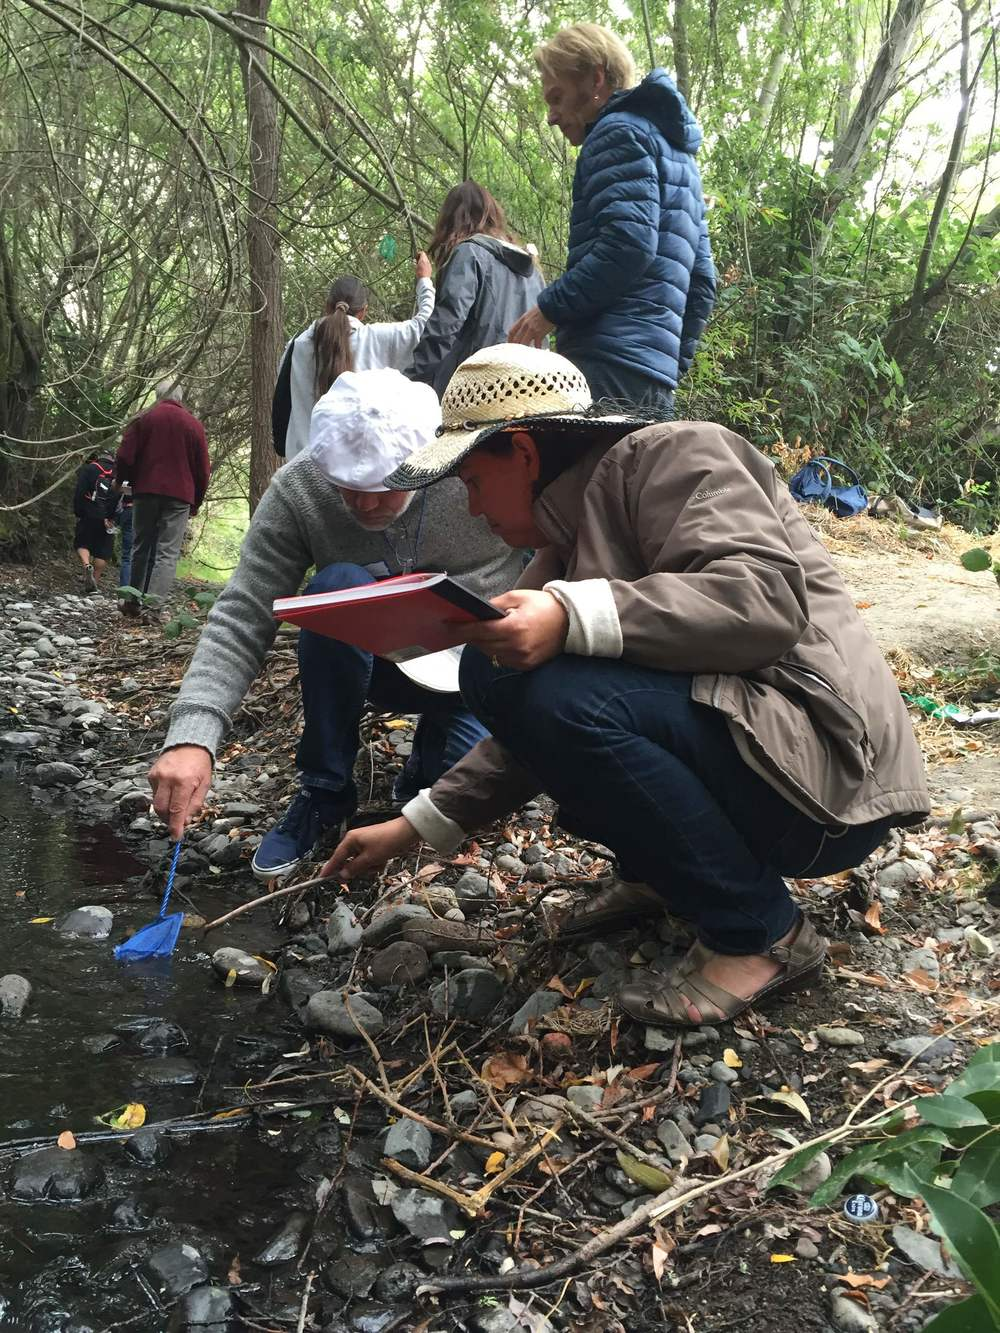 Down at Adobe Creek, teachers are reminded of the joys of critter catching.